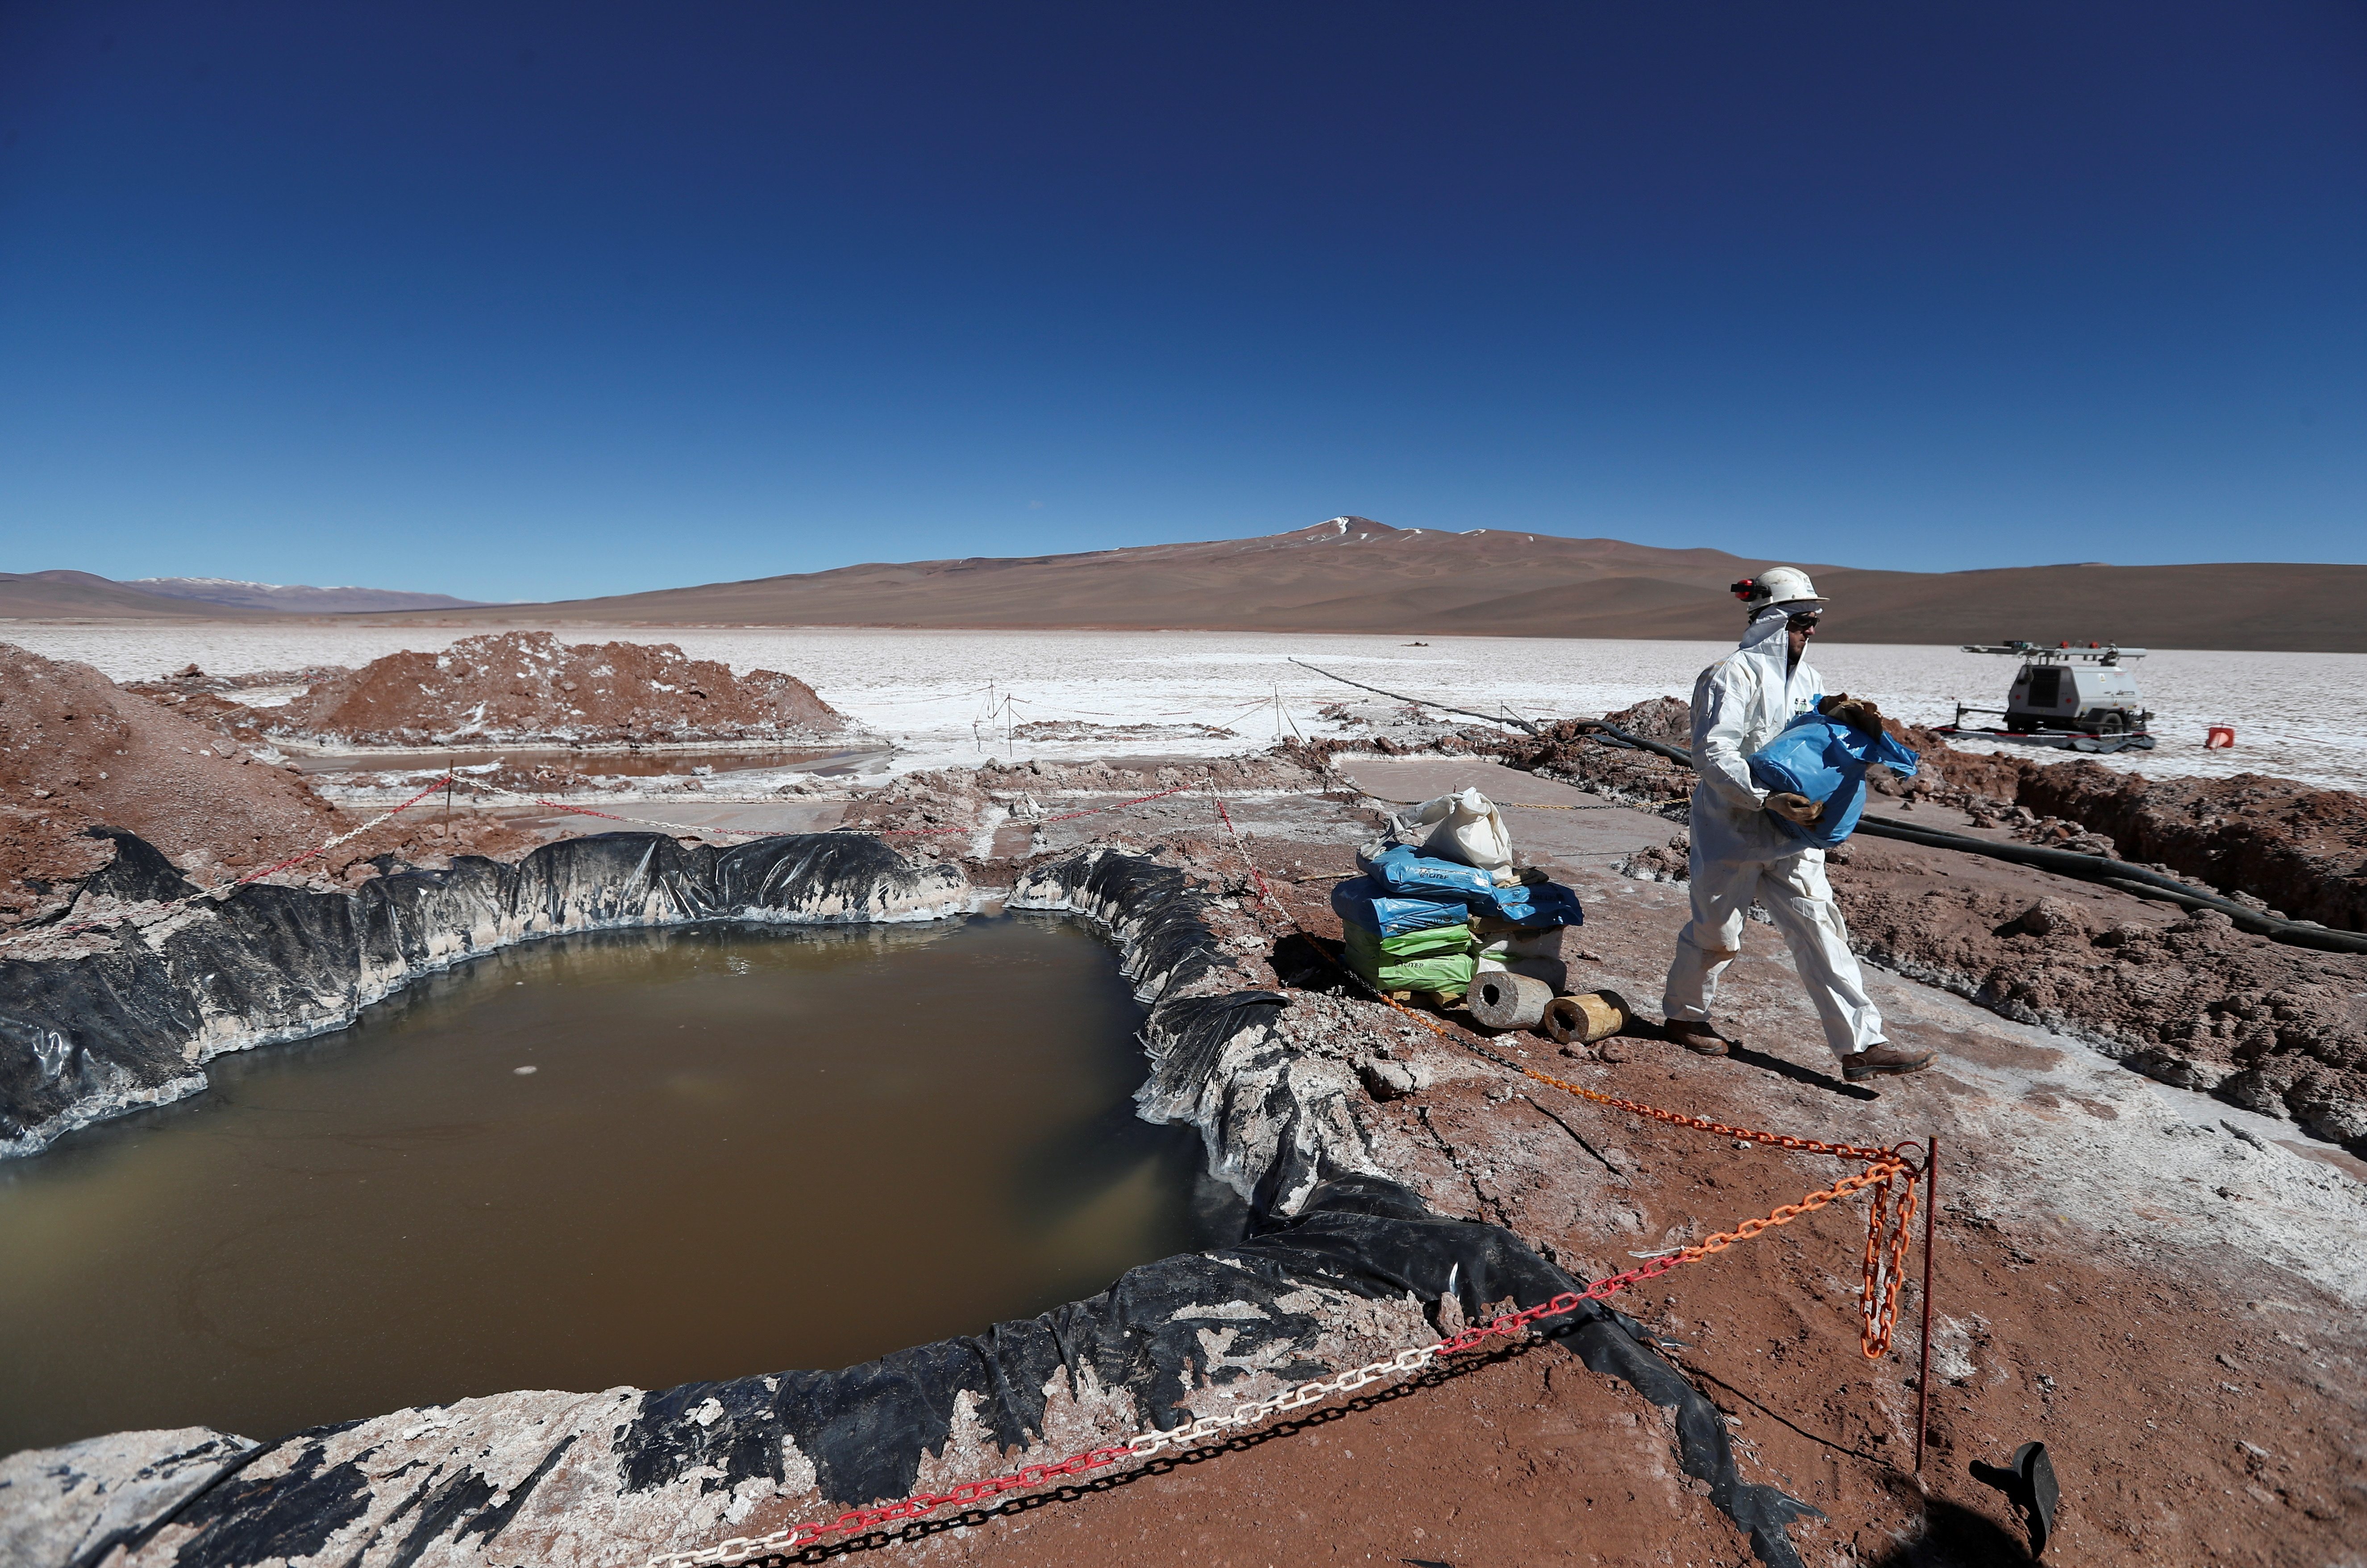 An Alpha lithium employee works next to a brine pool at the Tolillar salt flat, in Salta, Argentina August 13, 2021. REUTERS/Agustin Marcarian